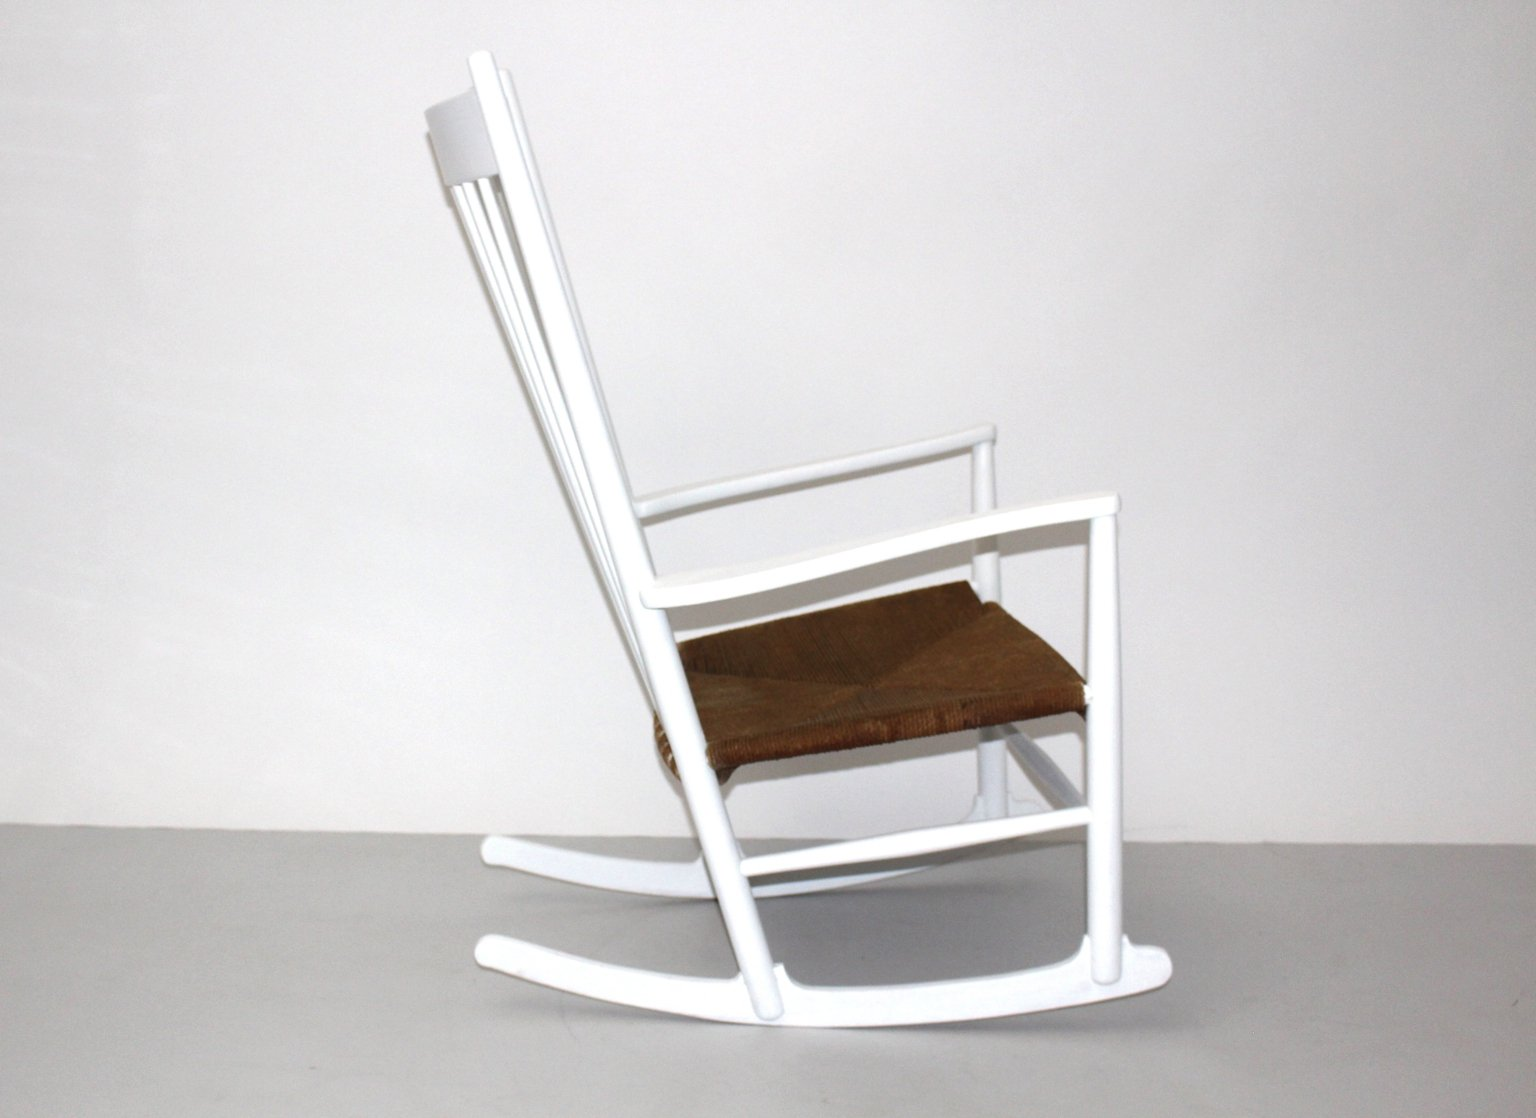 J16 Rocking Chair By Hans Wegner For Mobler F. D. B. 1964 For Sale At . Full resolution‎  portraiture, nominally Width 1536 Height 1118 pixels, portraiture with #482E1C.